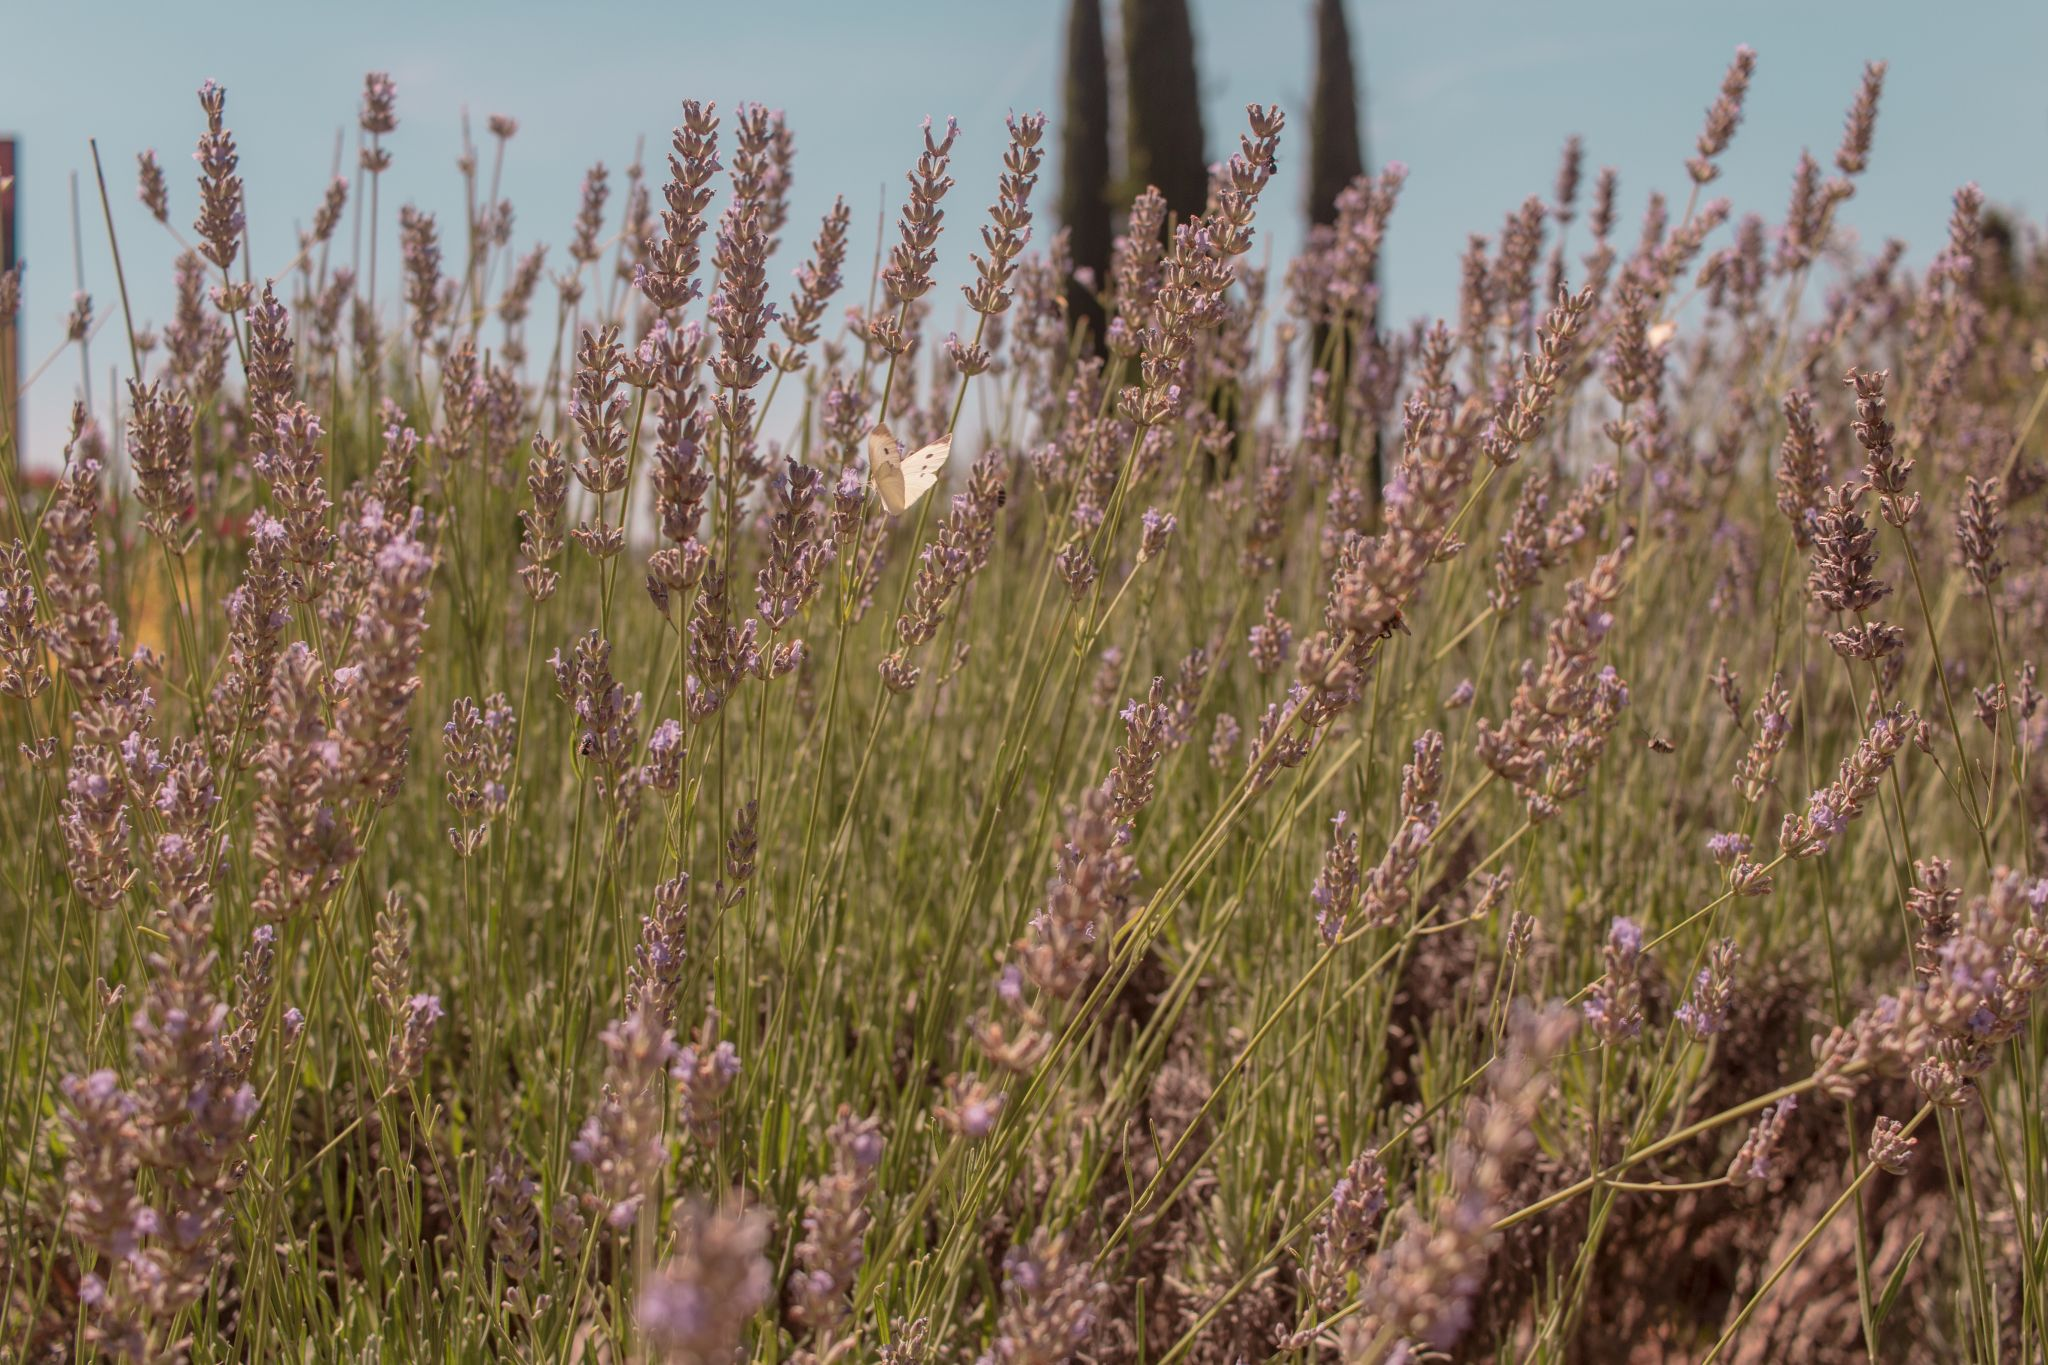 Adler Thermae Hotel Tuscany Hospitality Brand Hotel Travel Photography tuscan lavender fields